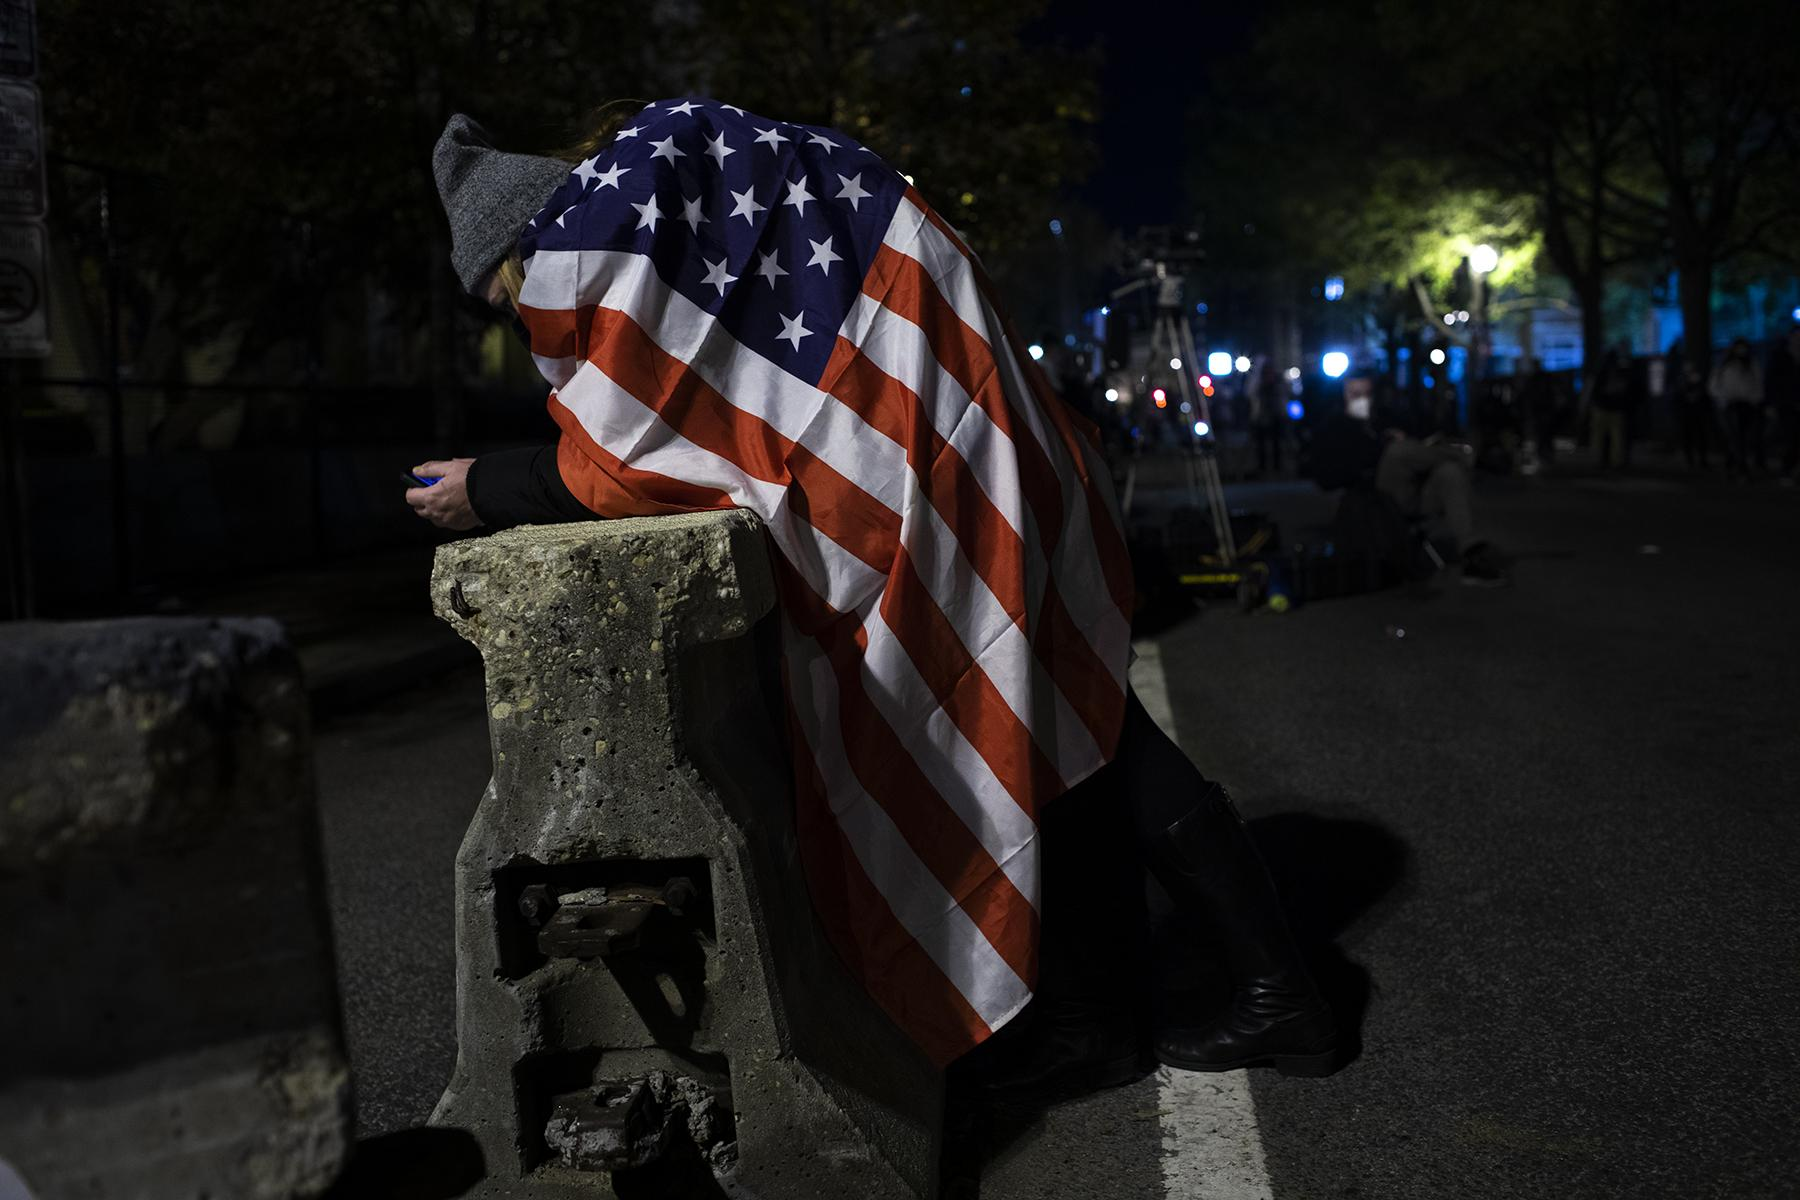 Raelyn Maxwell takes a break from protesting at BLM Plaza in Washington D.C. on November 3, 2020, Election Day.